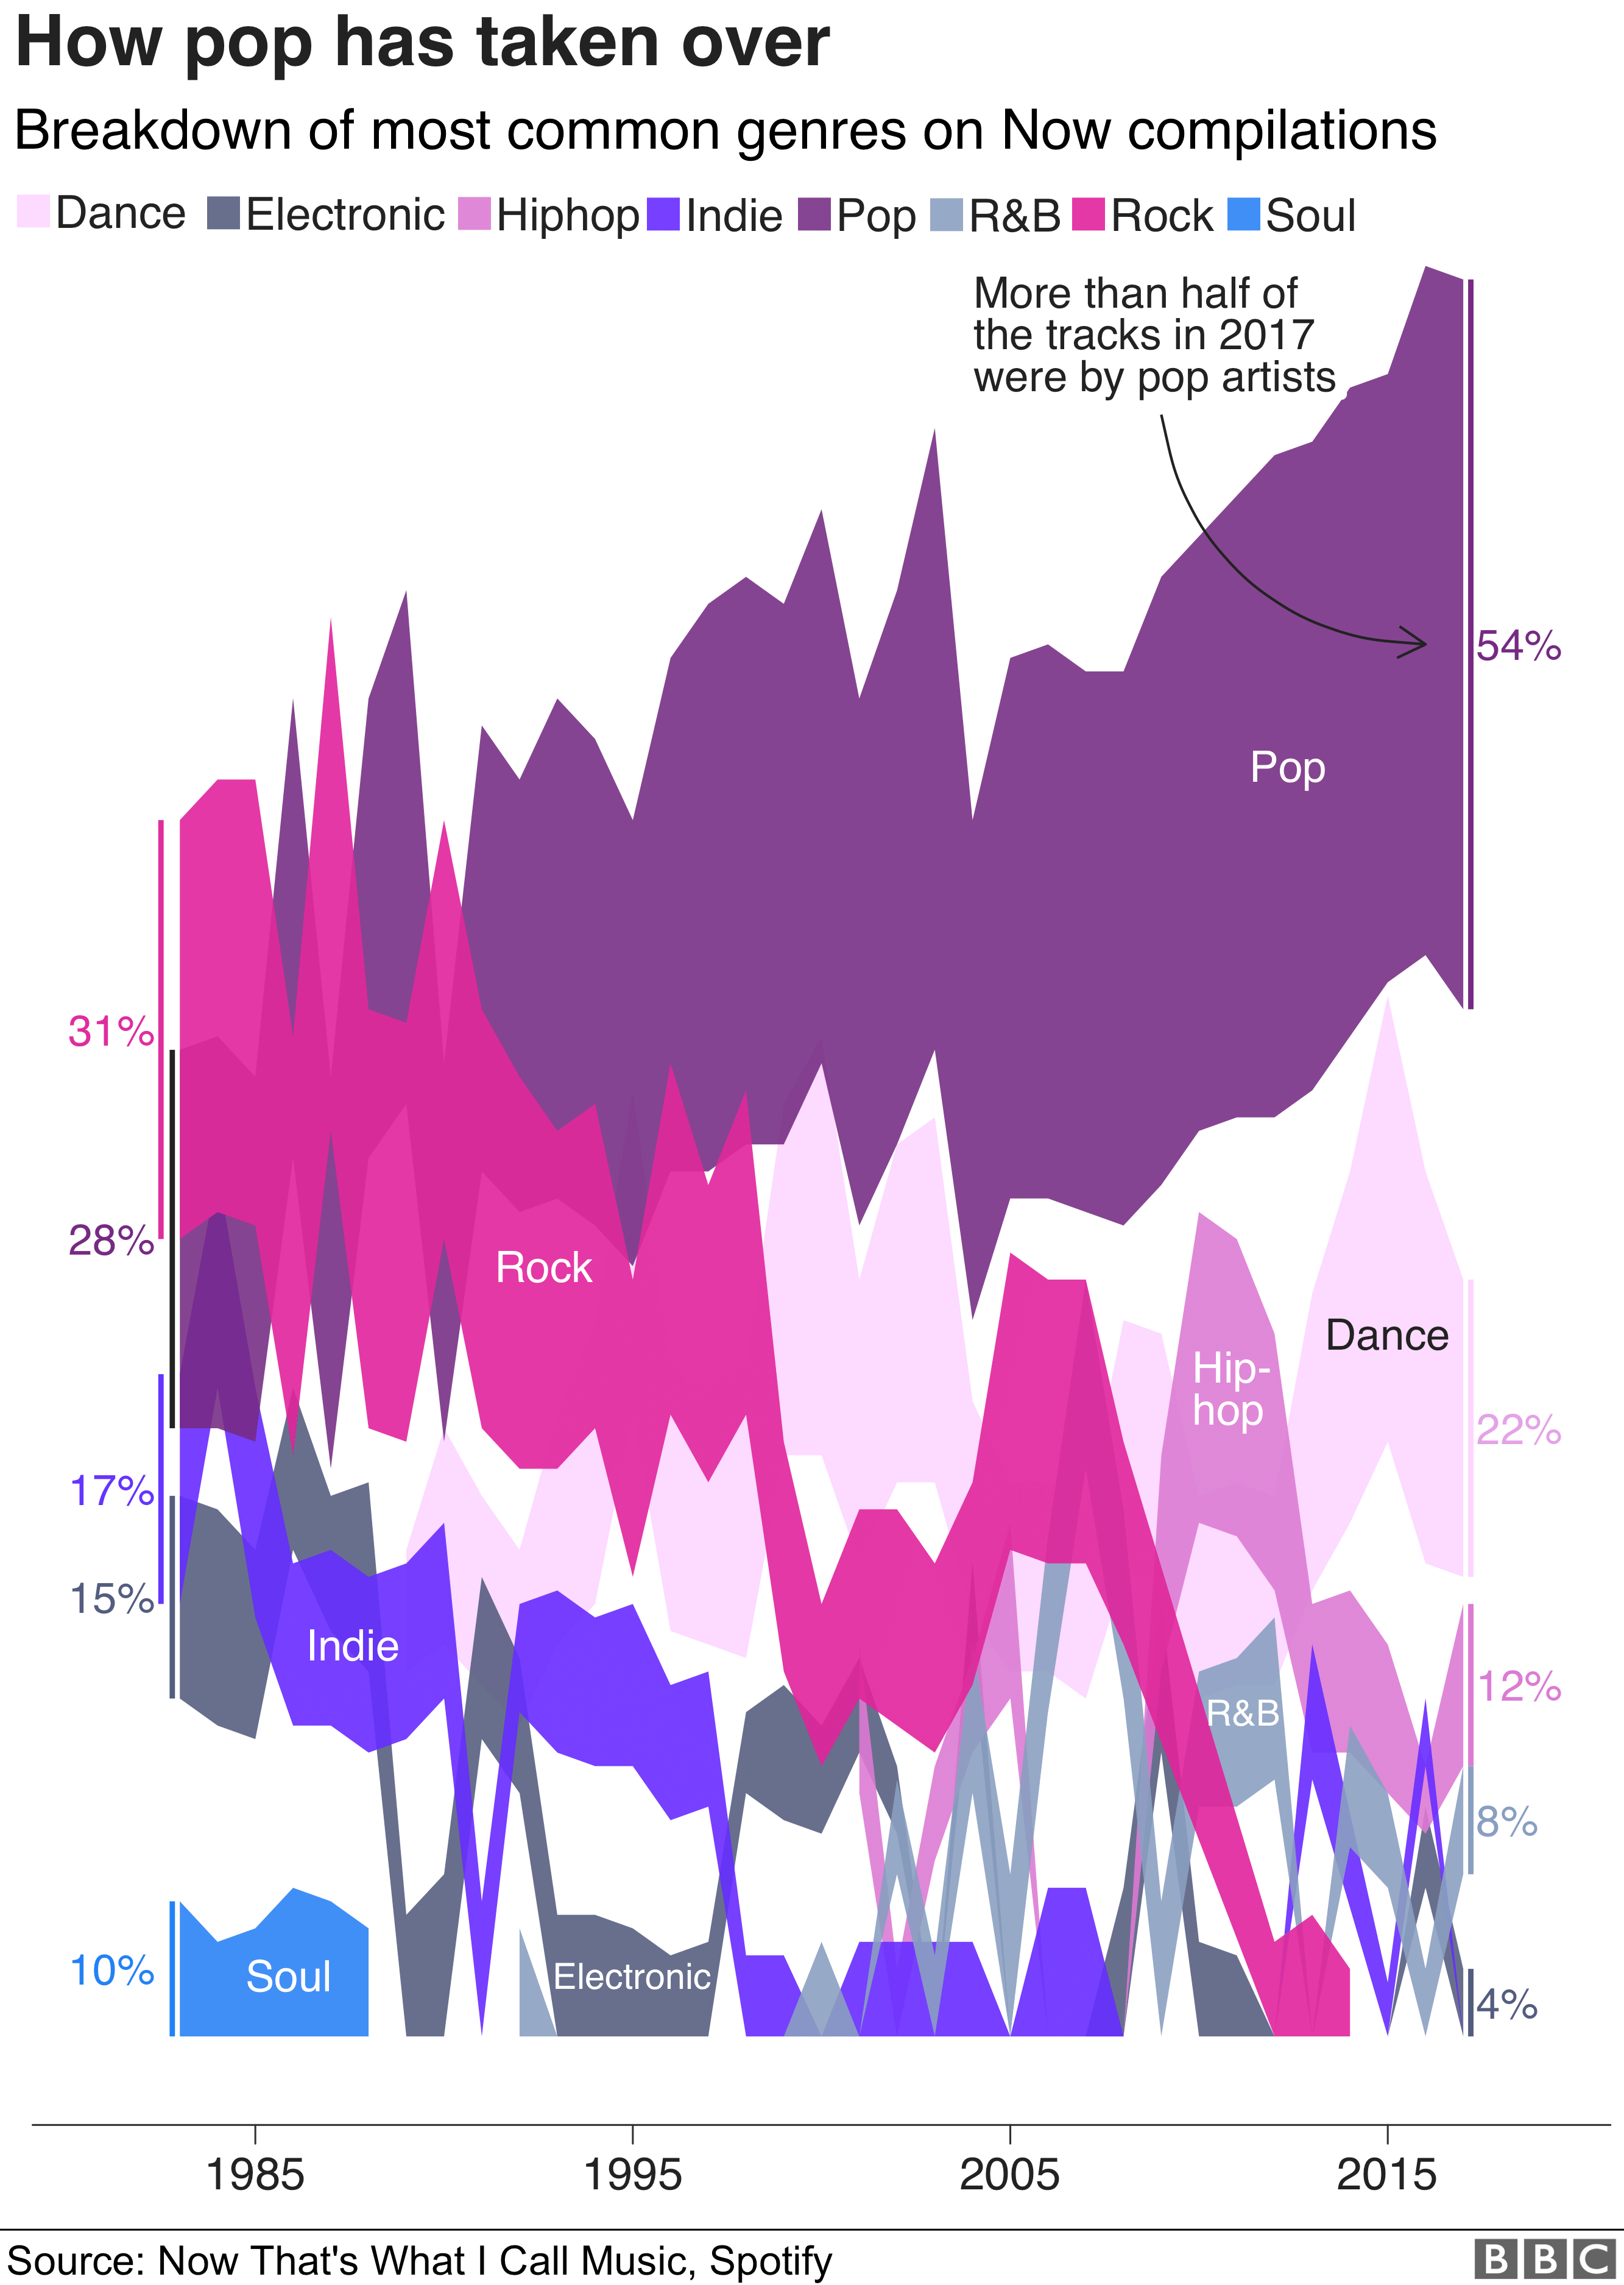 Graphic showing how the representation of genres has changed over time on the Now albums